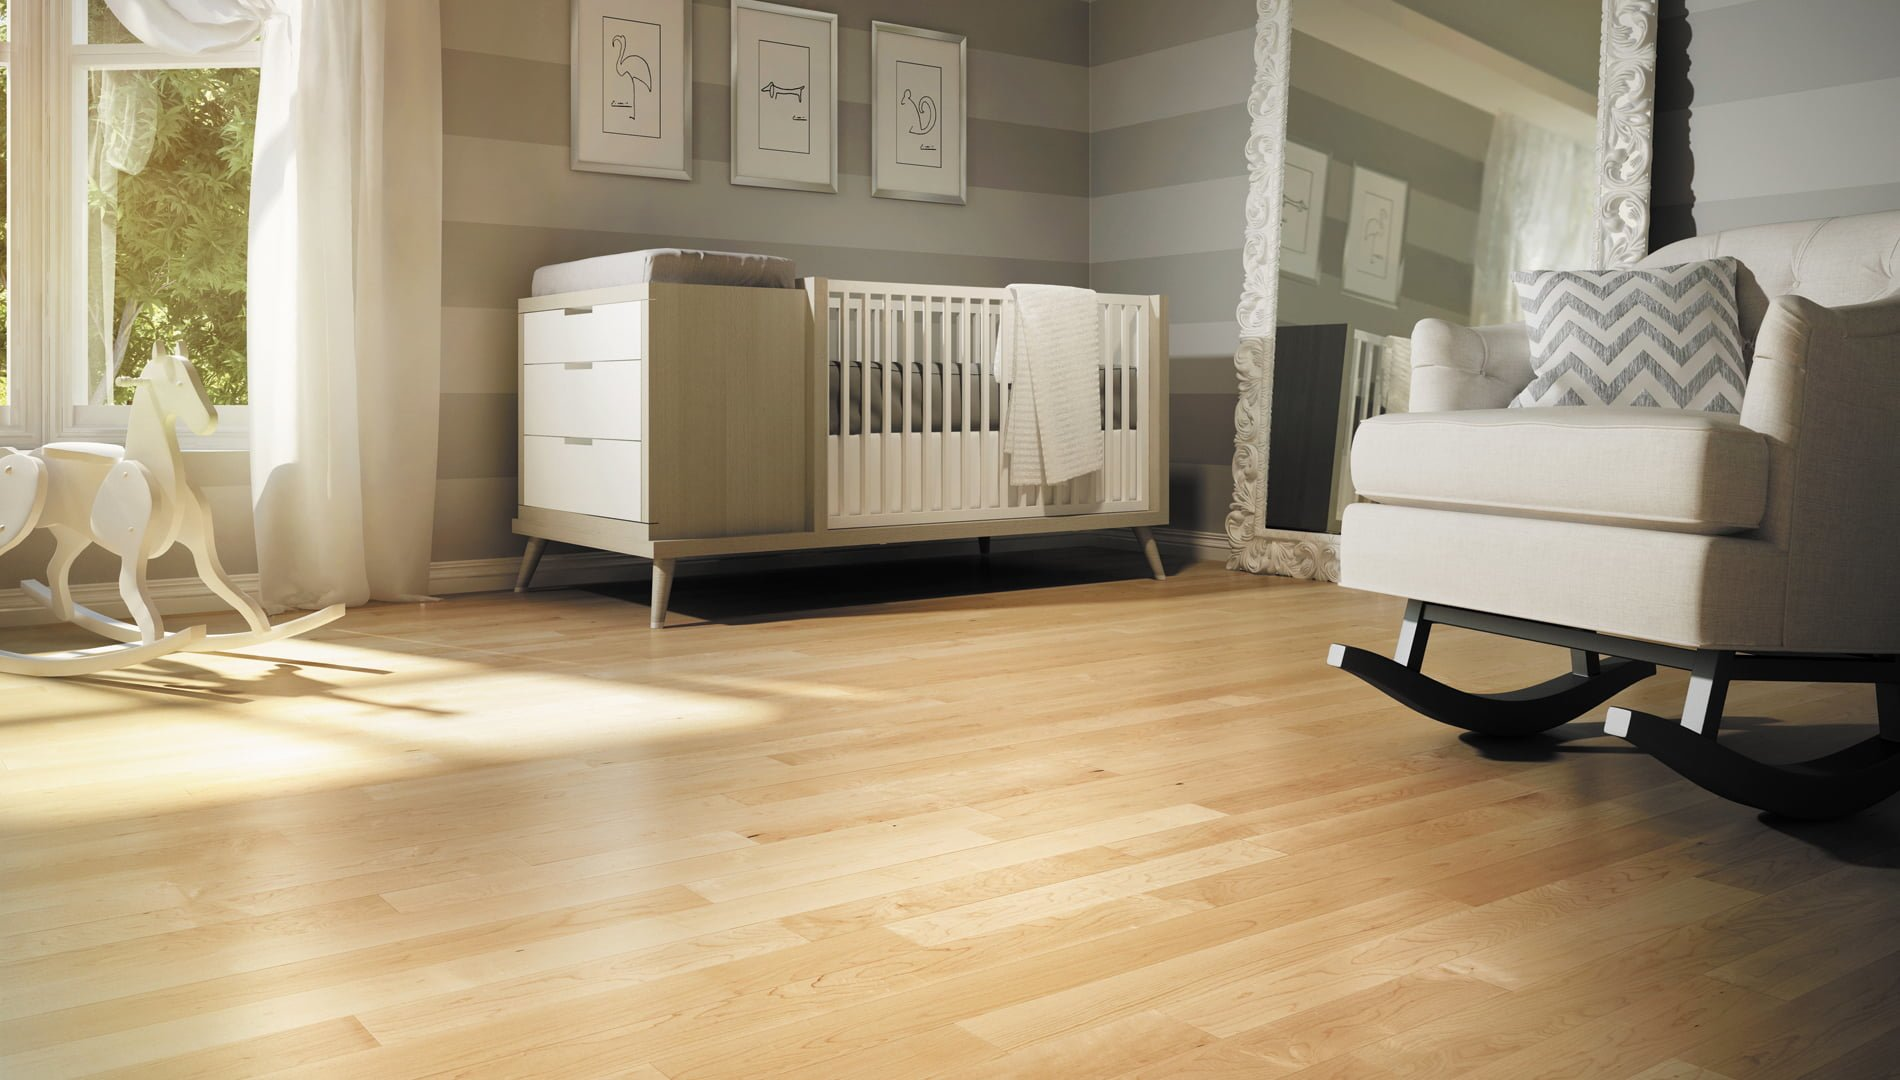 Lauzon ambiance collection hard maple natural aa floors - Hardwood floors in bedrooms or carpeting ...